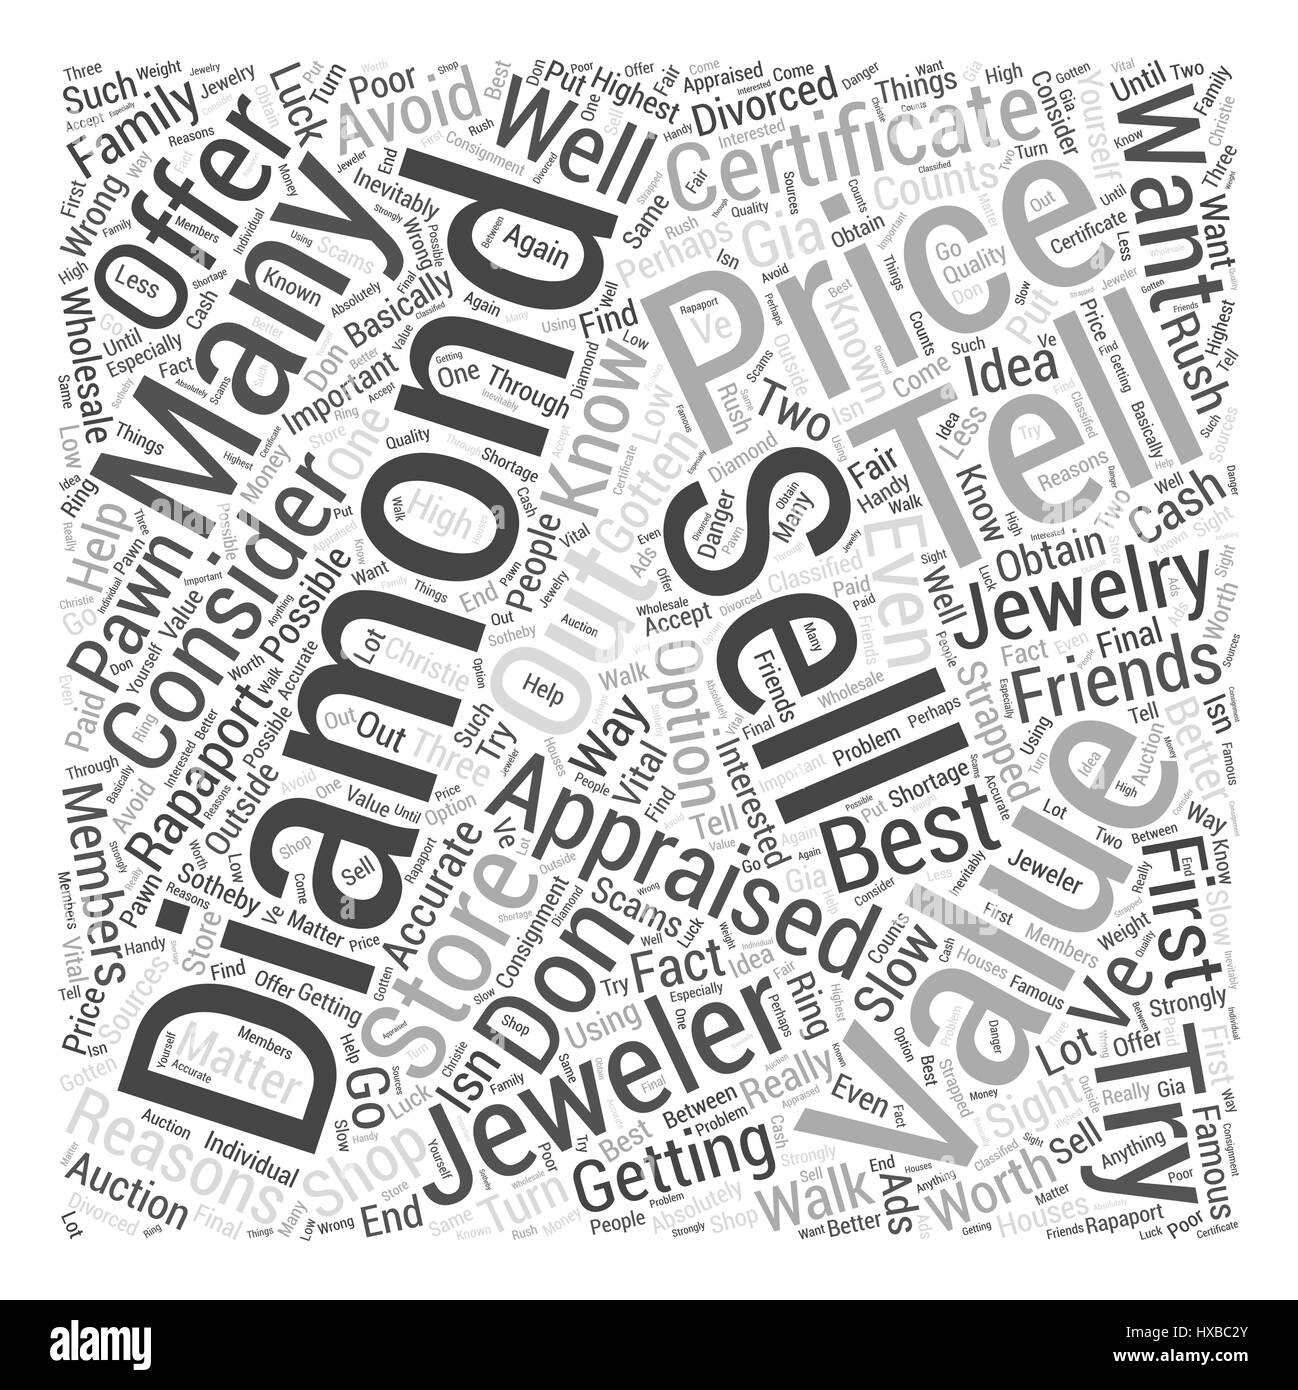 How to sell a diamond word cloud concept stock vector art how to sell a diamond word cloud concept 1betcityfo Images